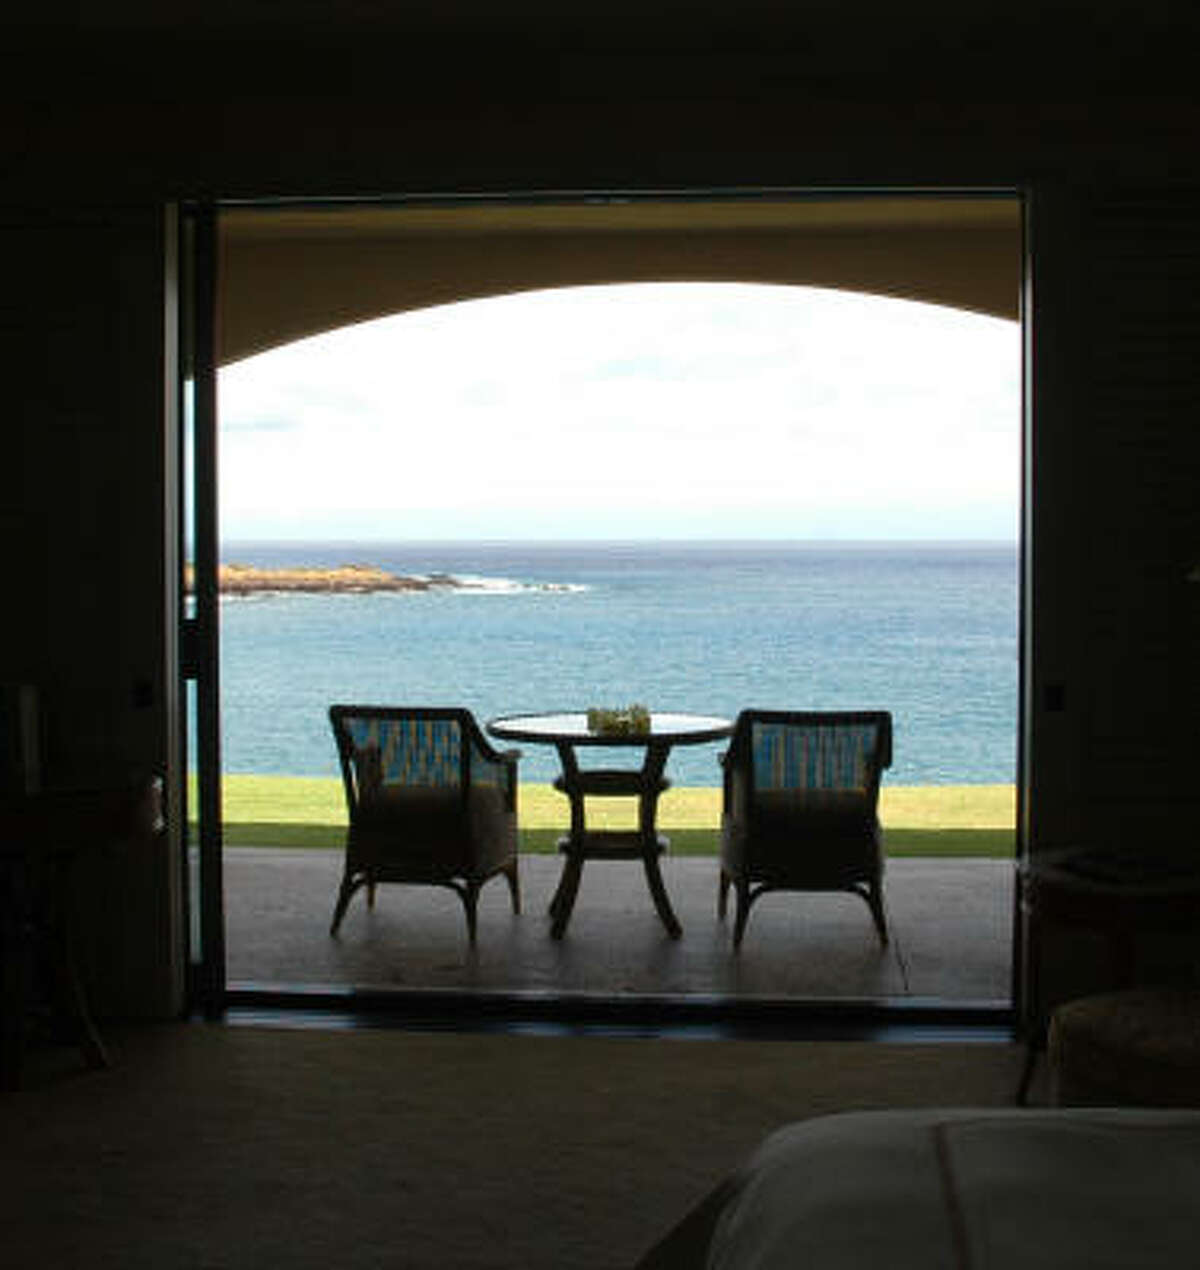 Many of the rooms at the Four Seasons Resort at Manele Bay have balconies or patios overlooking the Pacific Ocean.